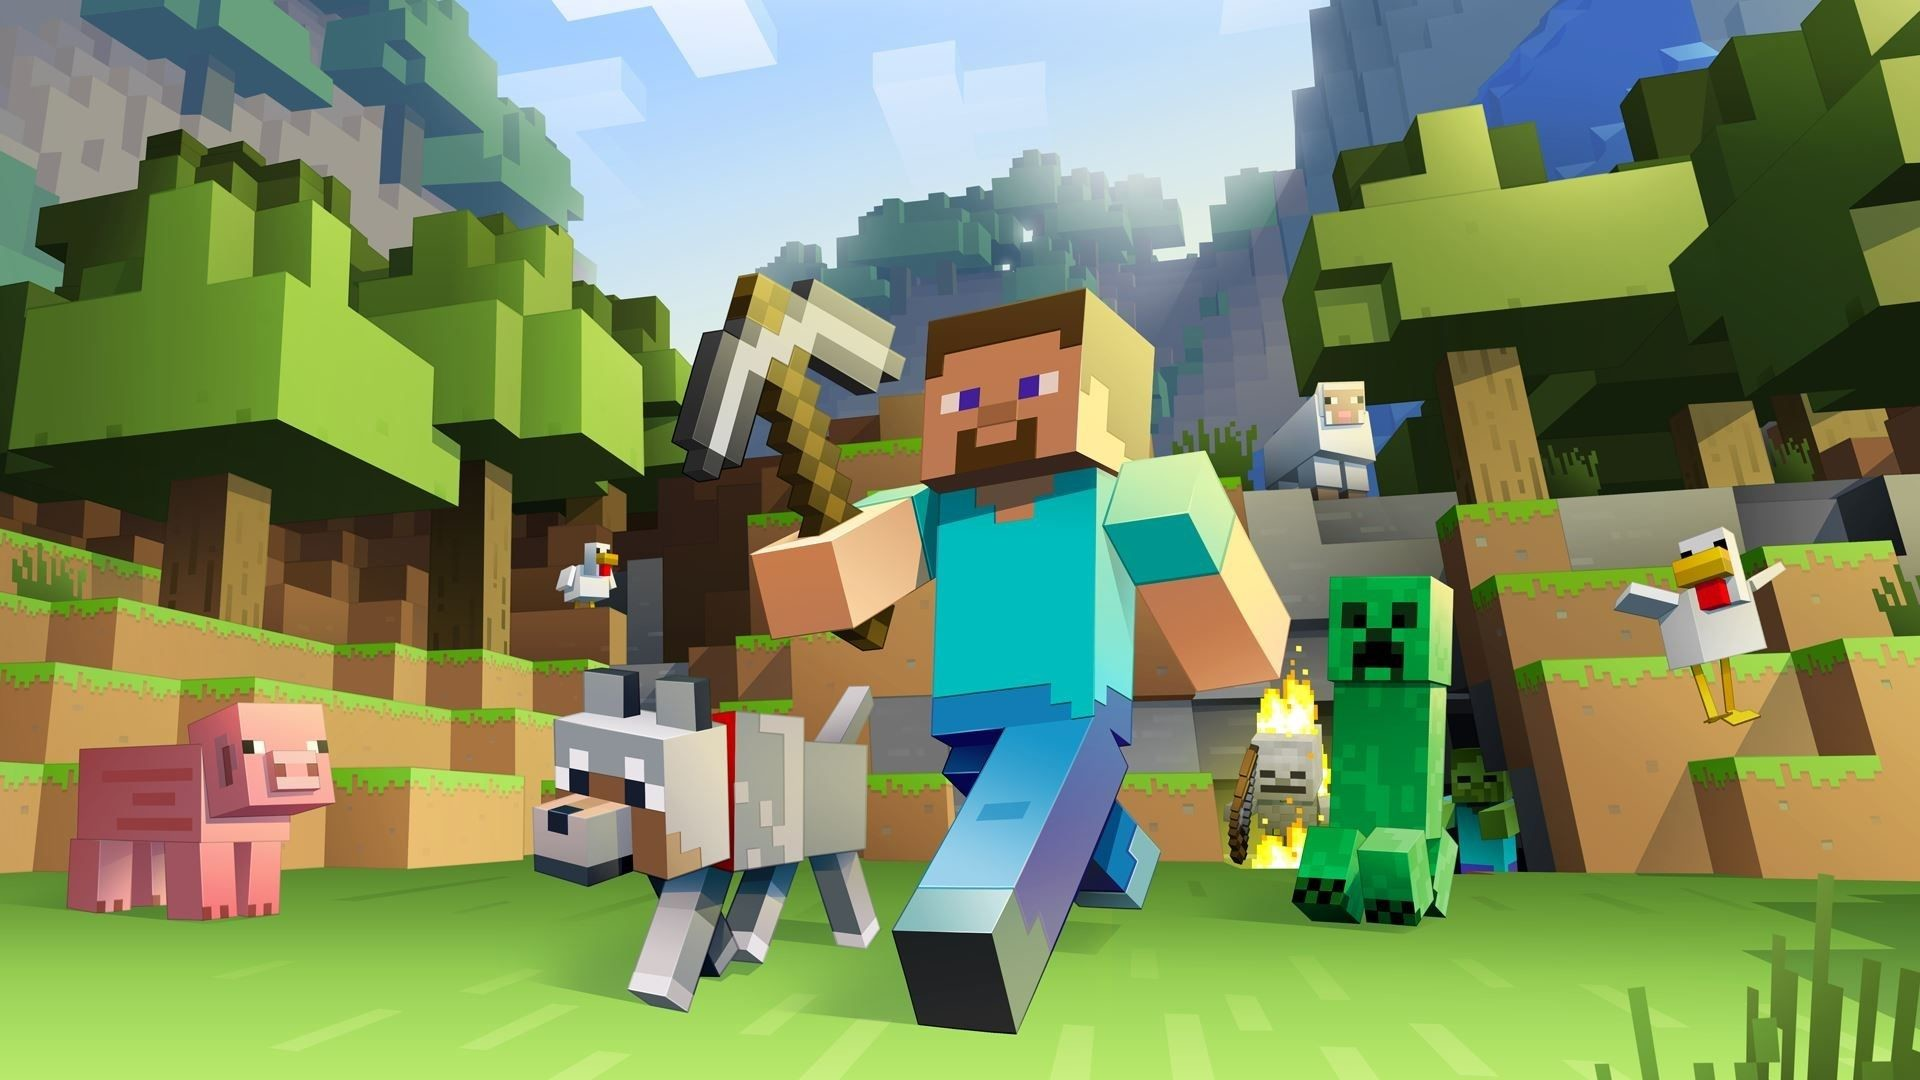 Res: 1920x1080, Minecraft Wallpapers For Computer Wallpaper 1366×768 Minecraft Laptop  Backgrounds (48 Wallpapers) | Adorable Wallpapers